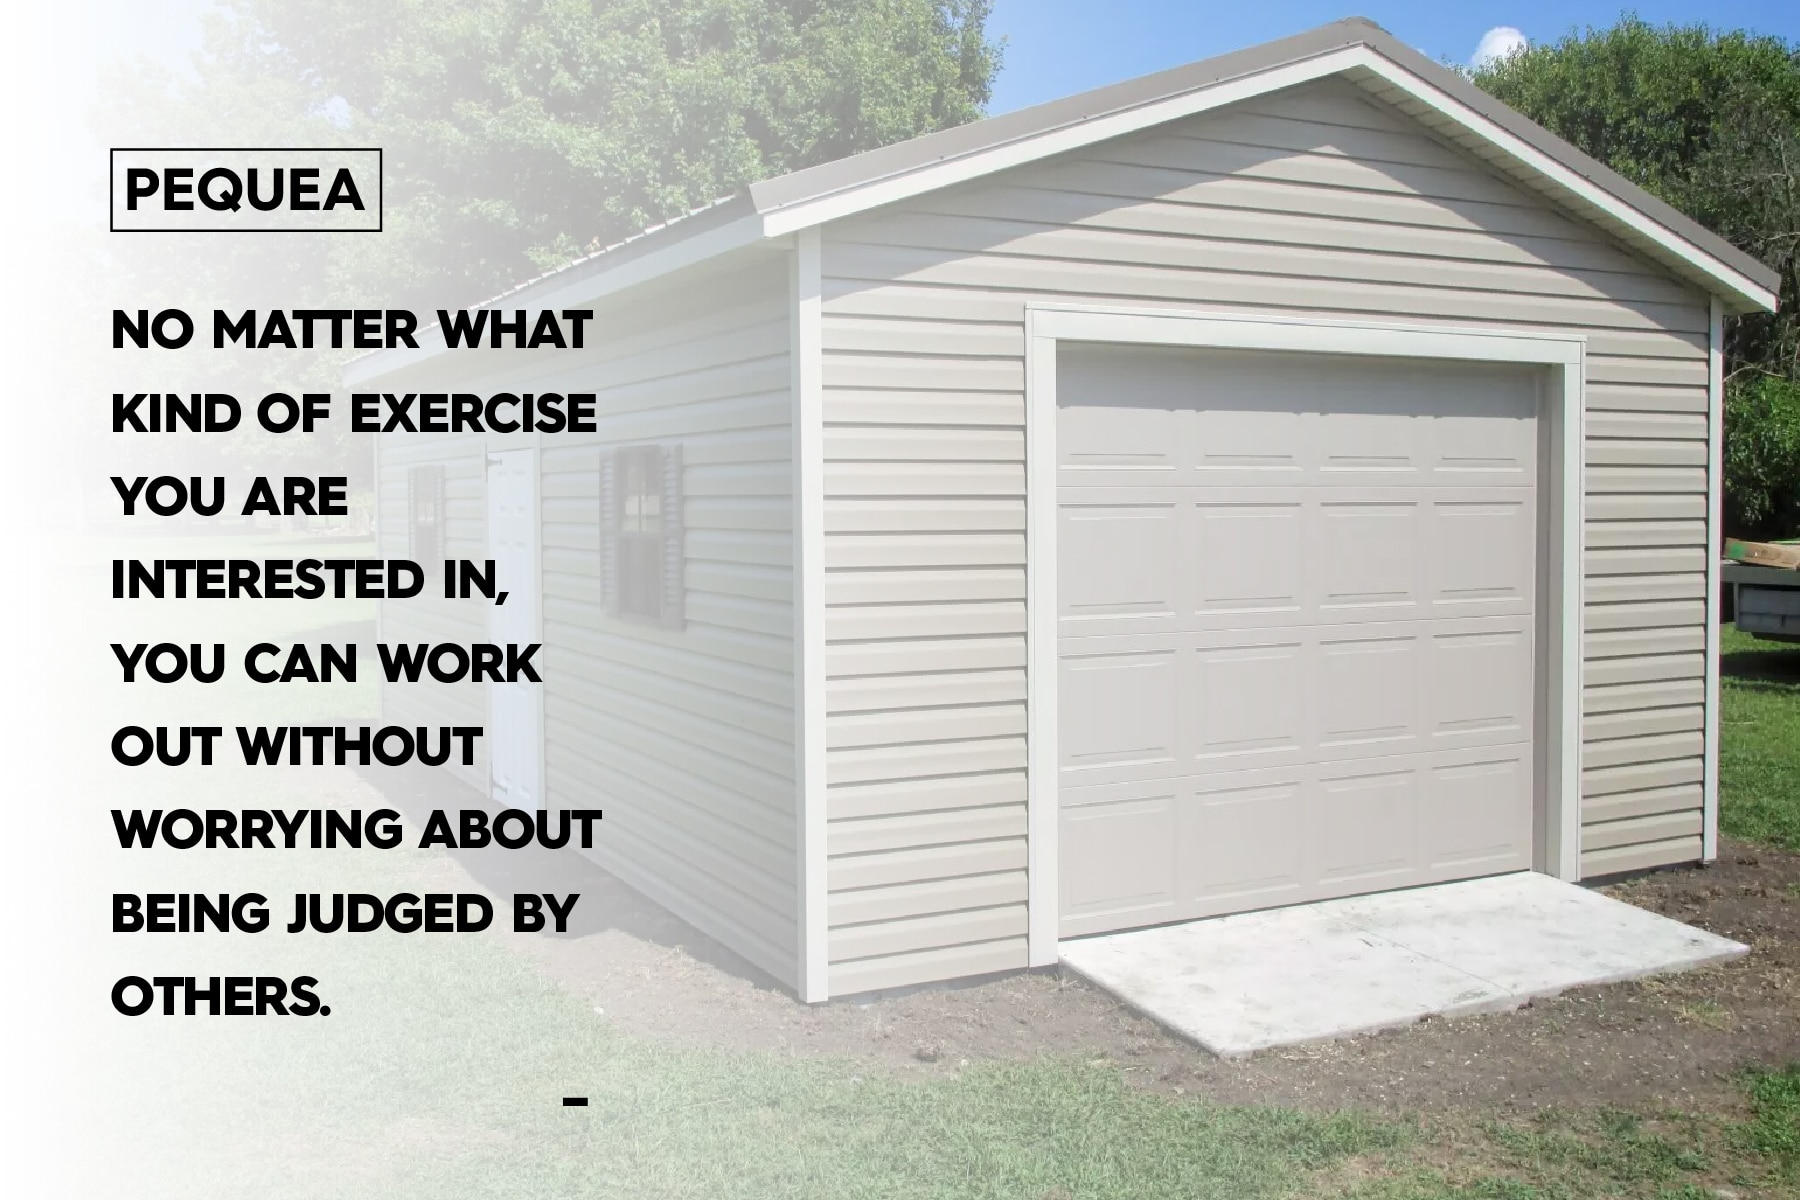 garages are a great place to exercise